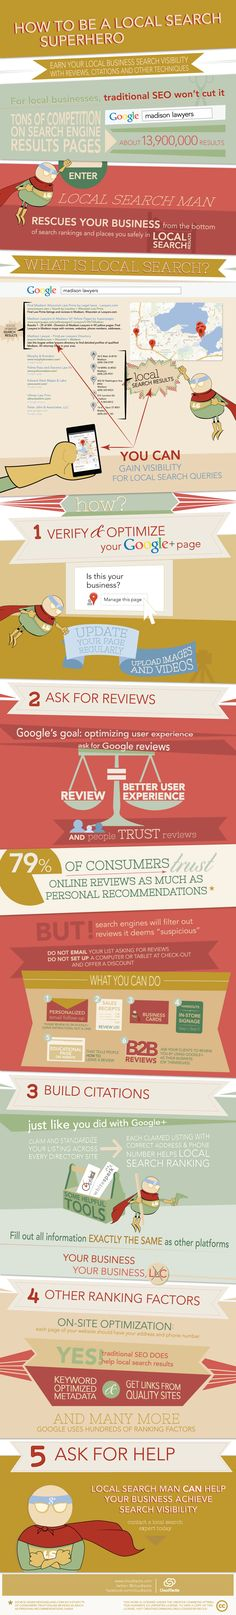 How to Be a Local Search Superhero - #Infographic #SEO #LocalSearch